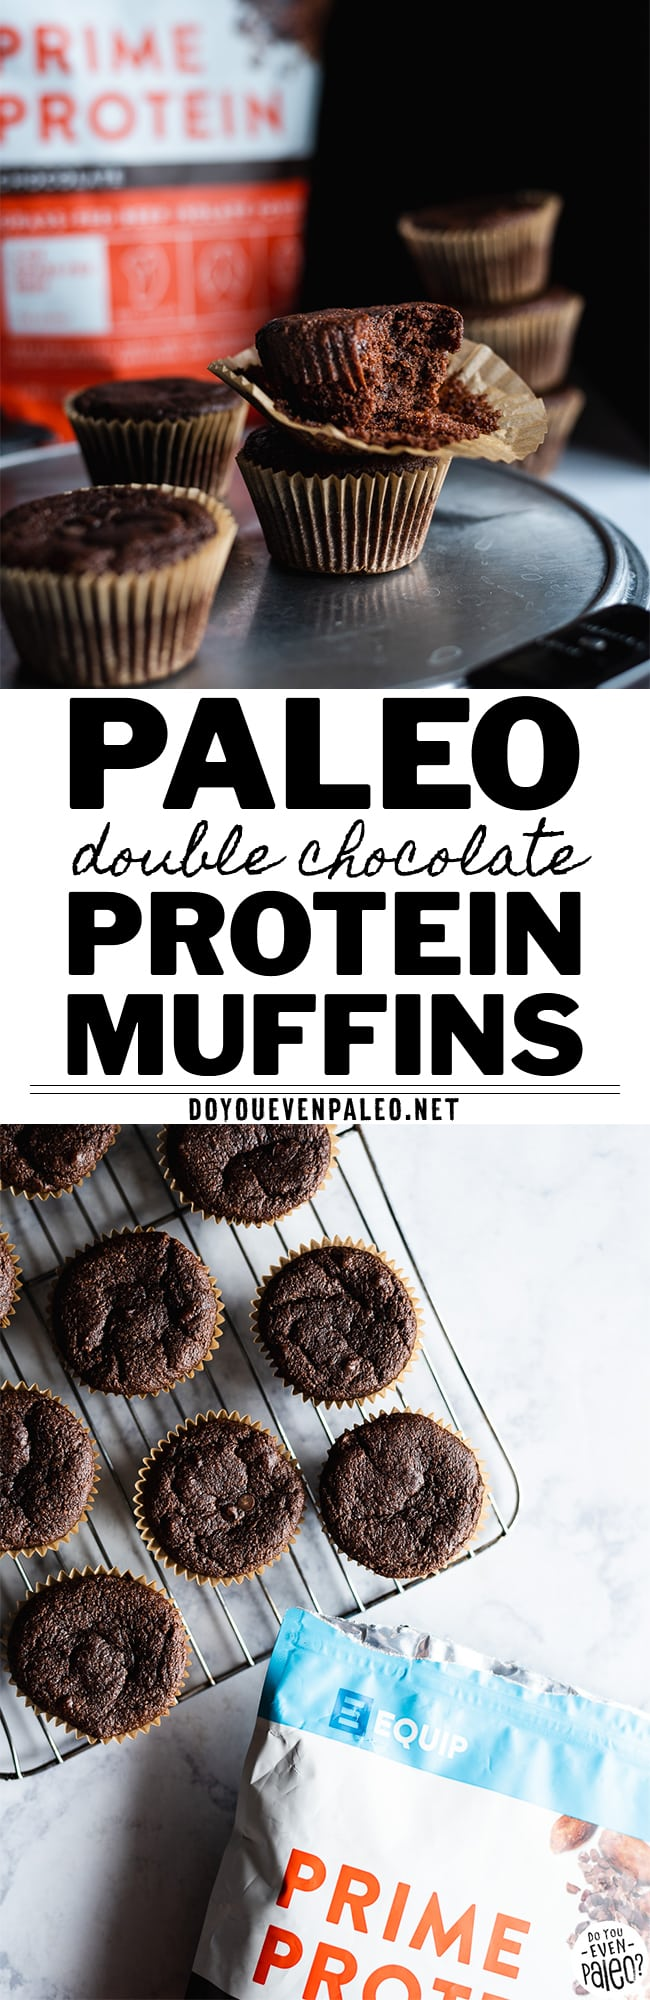 Paleo Double Chocolate Protein Muffins with Equip Prime Protein | DoYouEvenPaleo.net